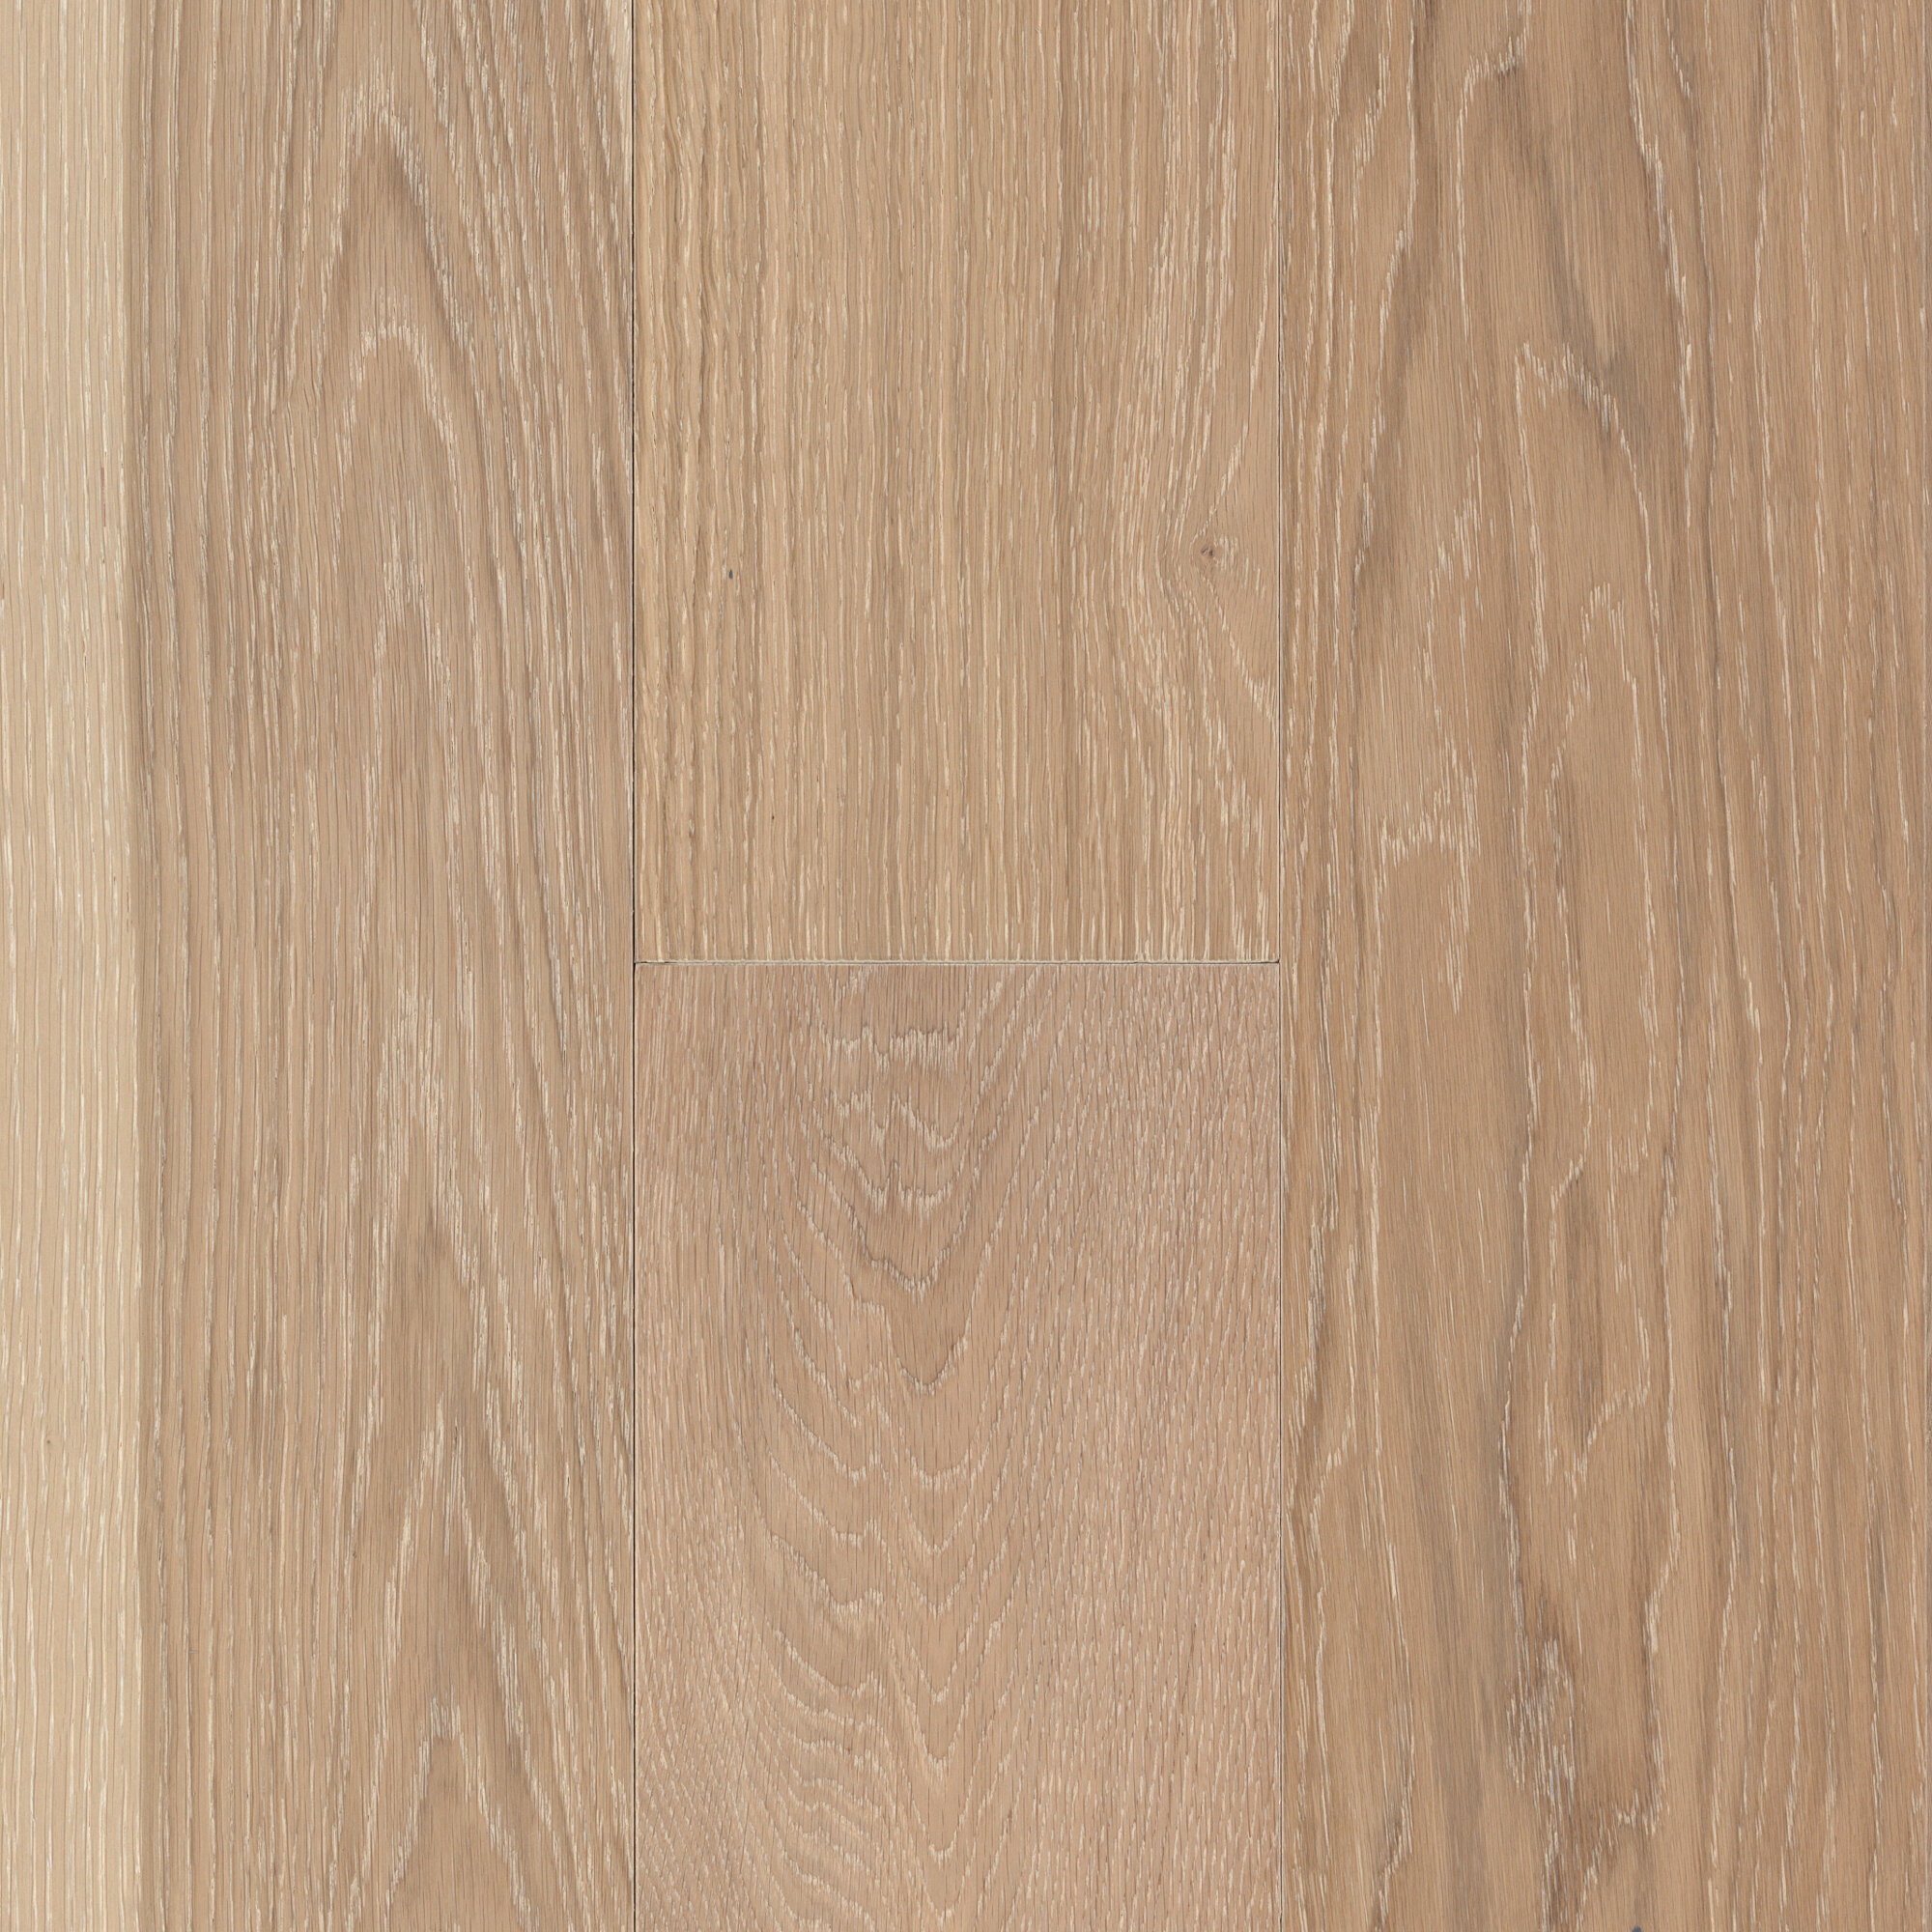 Mohawk Vintage Harbor 7 Engineered Oak Hardwood Flooring In Lighthouse White